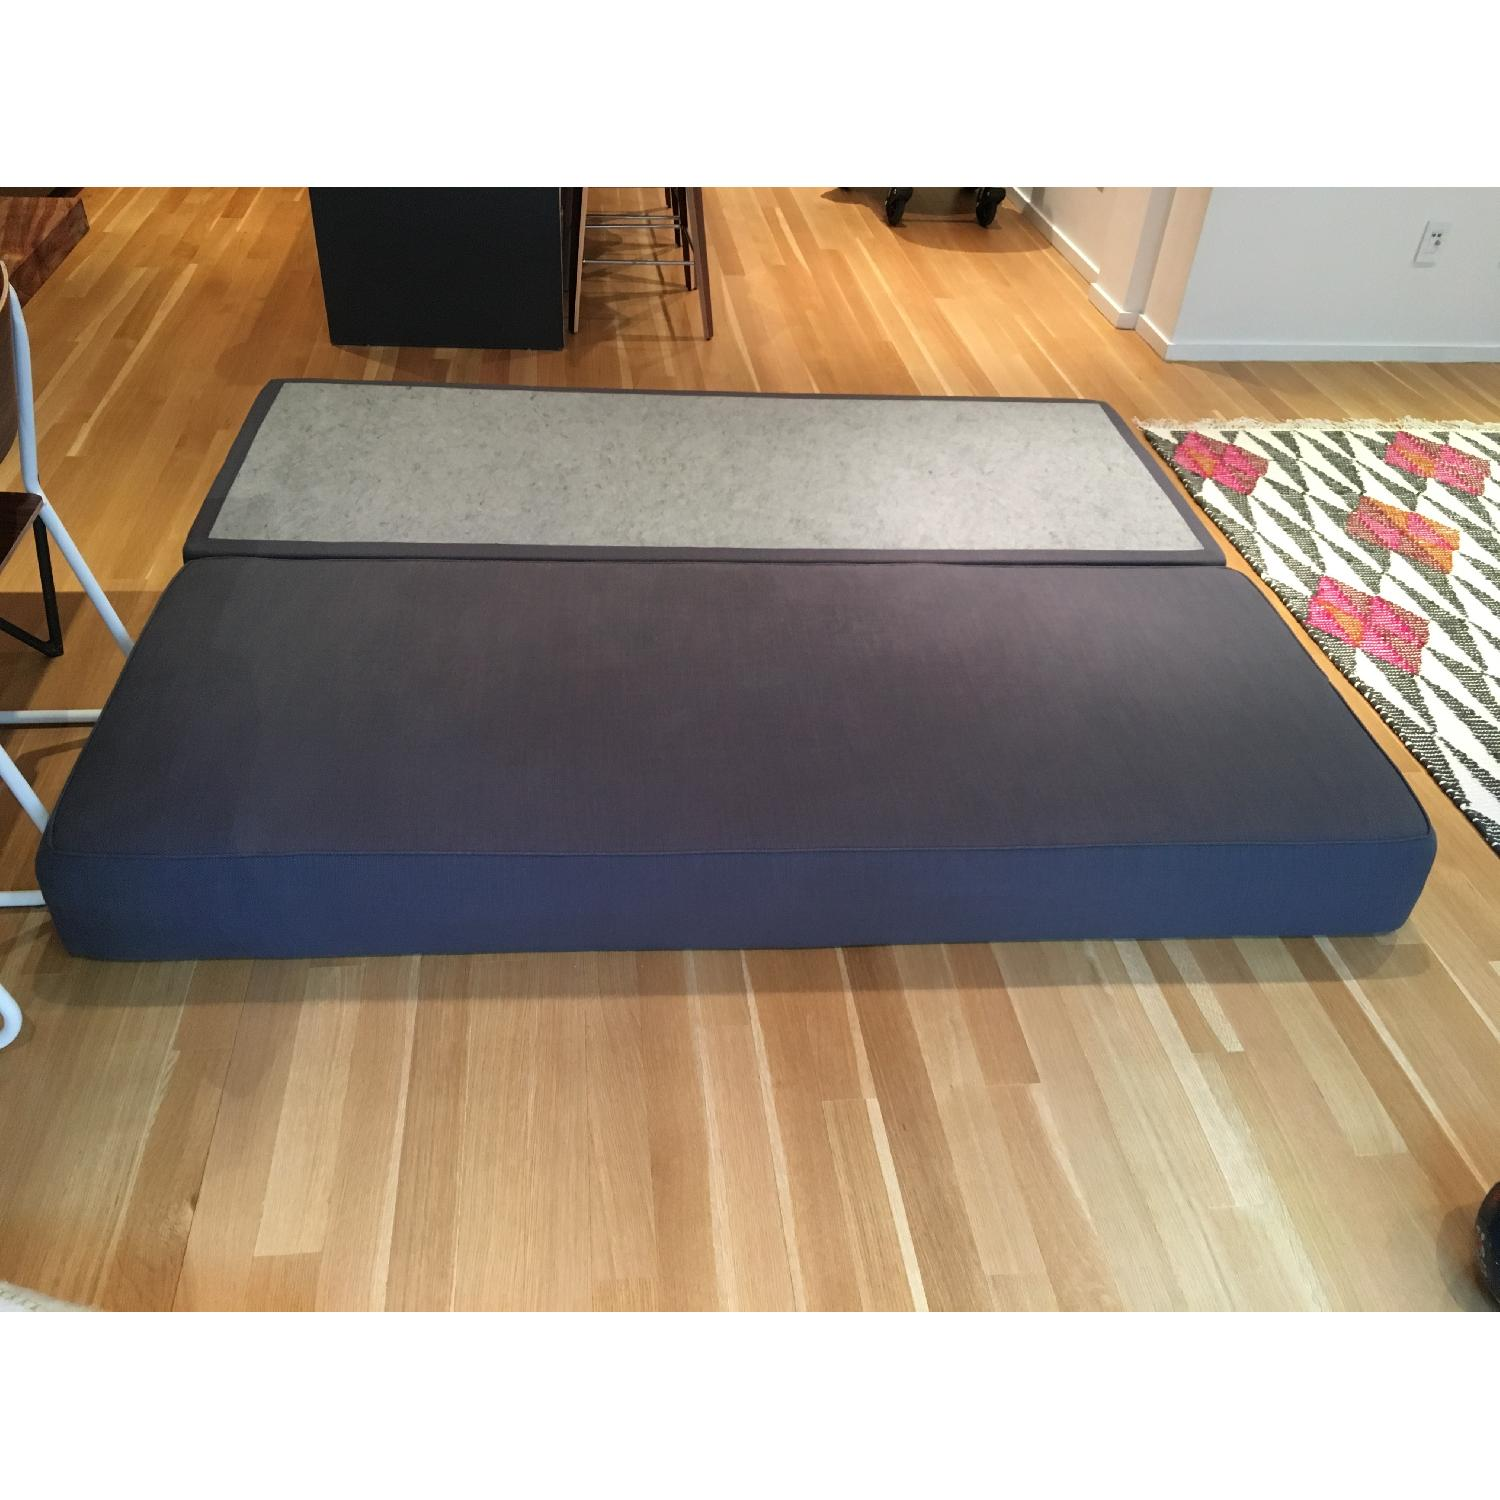 CB2 Lubi Sleeper Daybed - image-14